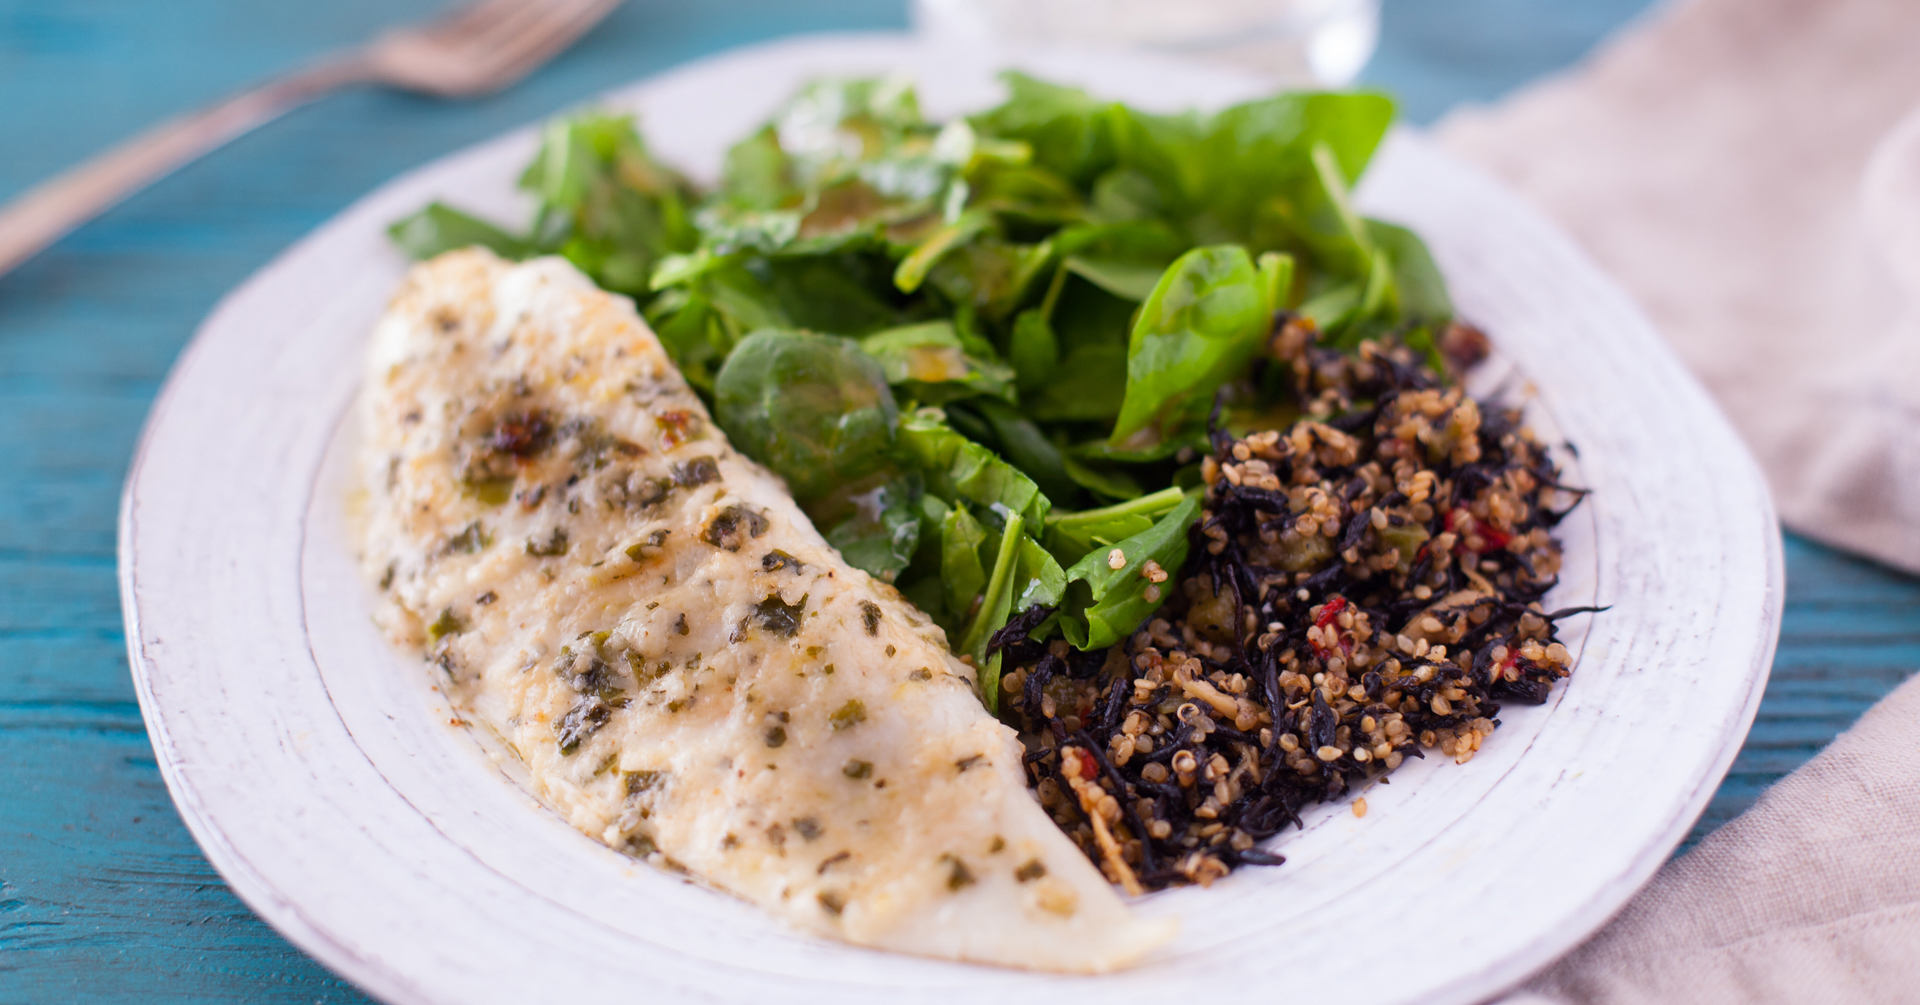 Best tilapia recipe 15 minute parmesan tilapia eating for Is tilapia a healthy fish to eat